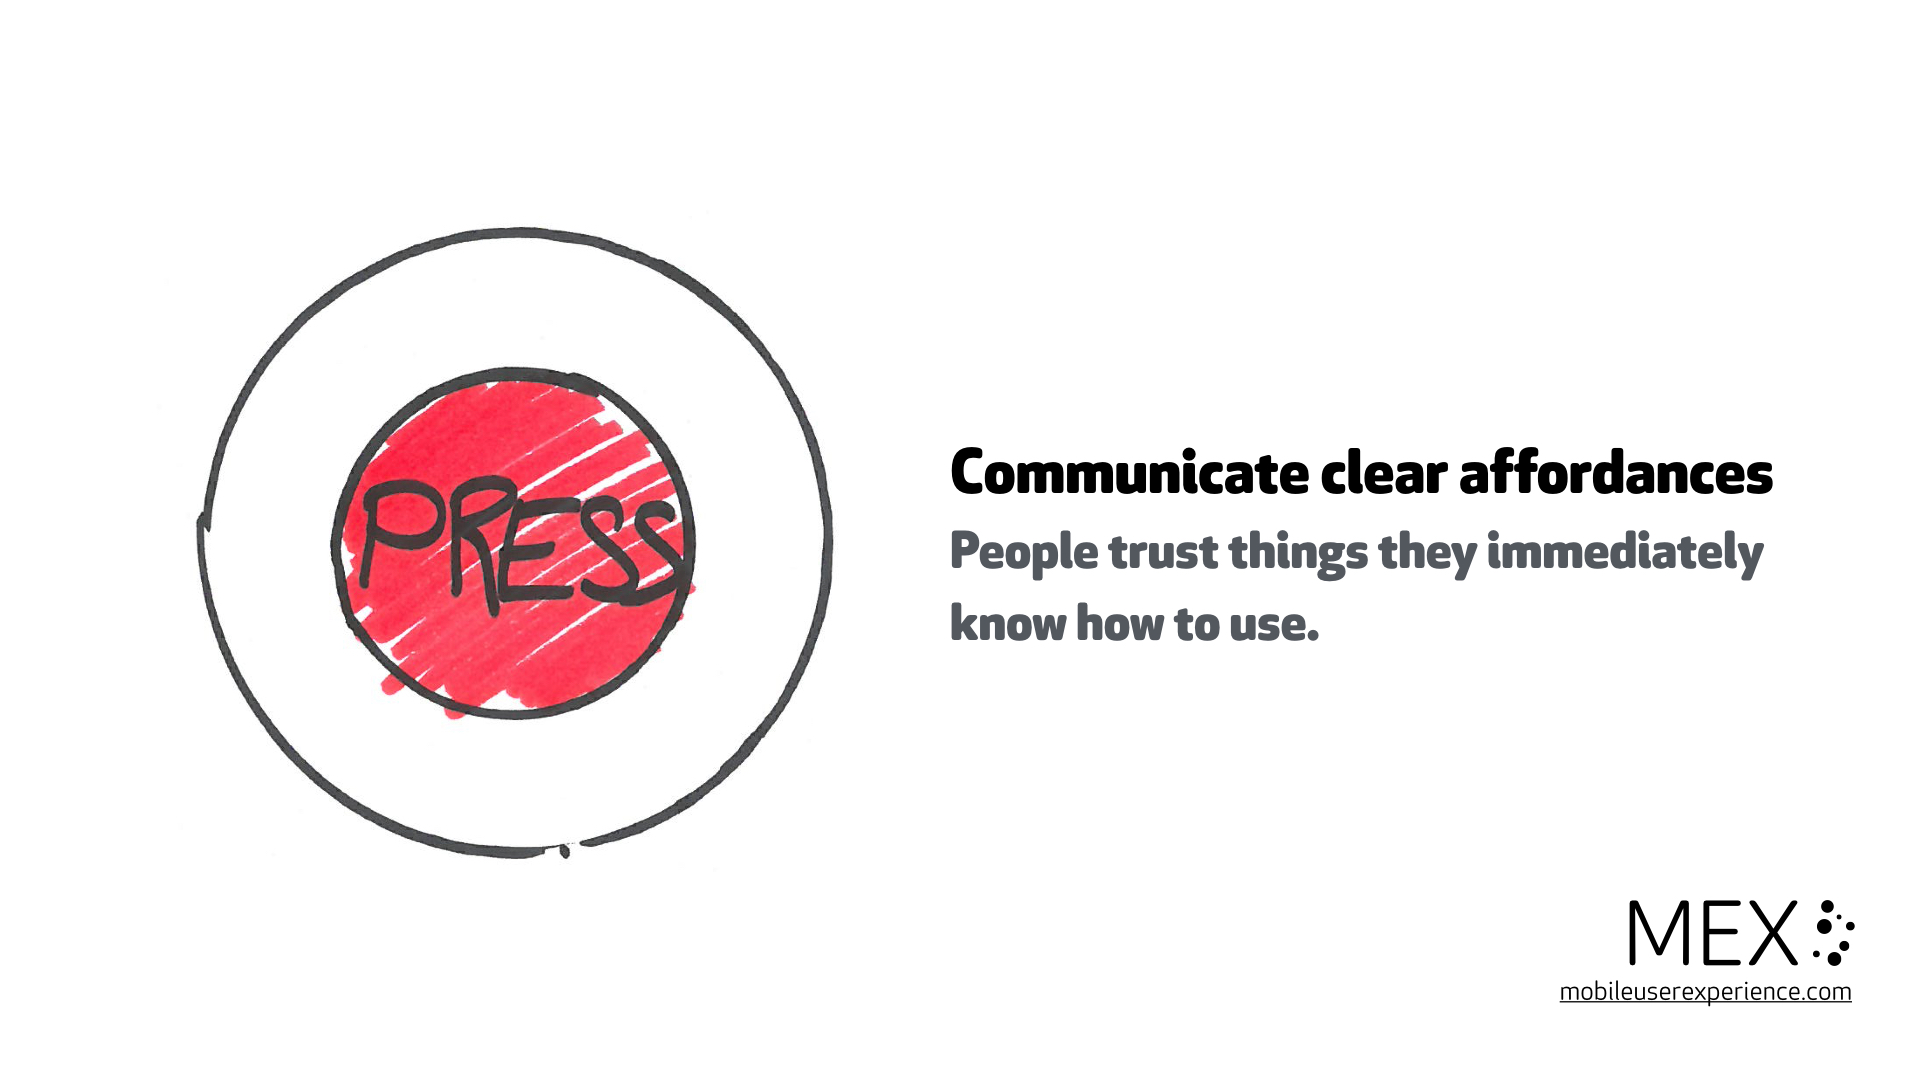 Communicate clear affordances. People trust things they immediately know how to use.